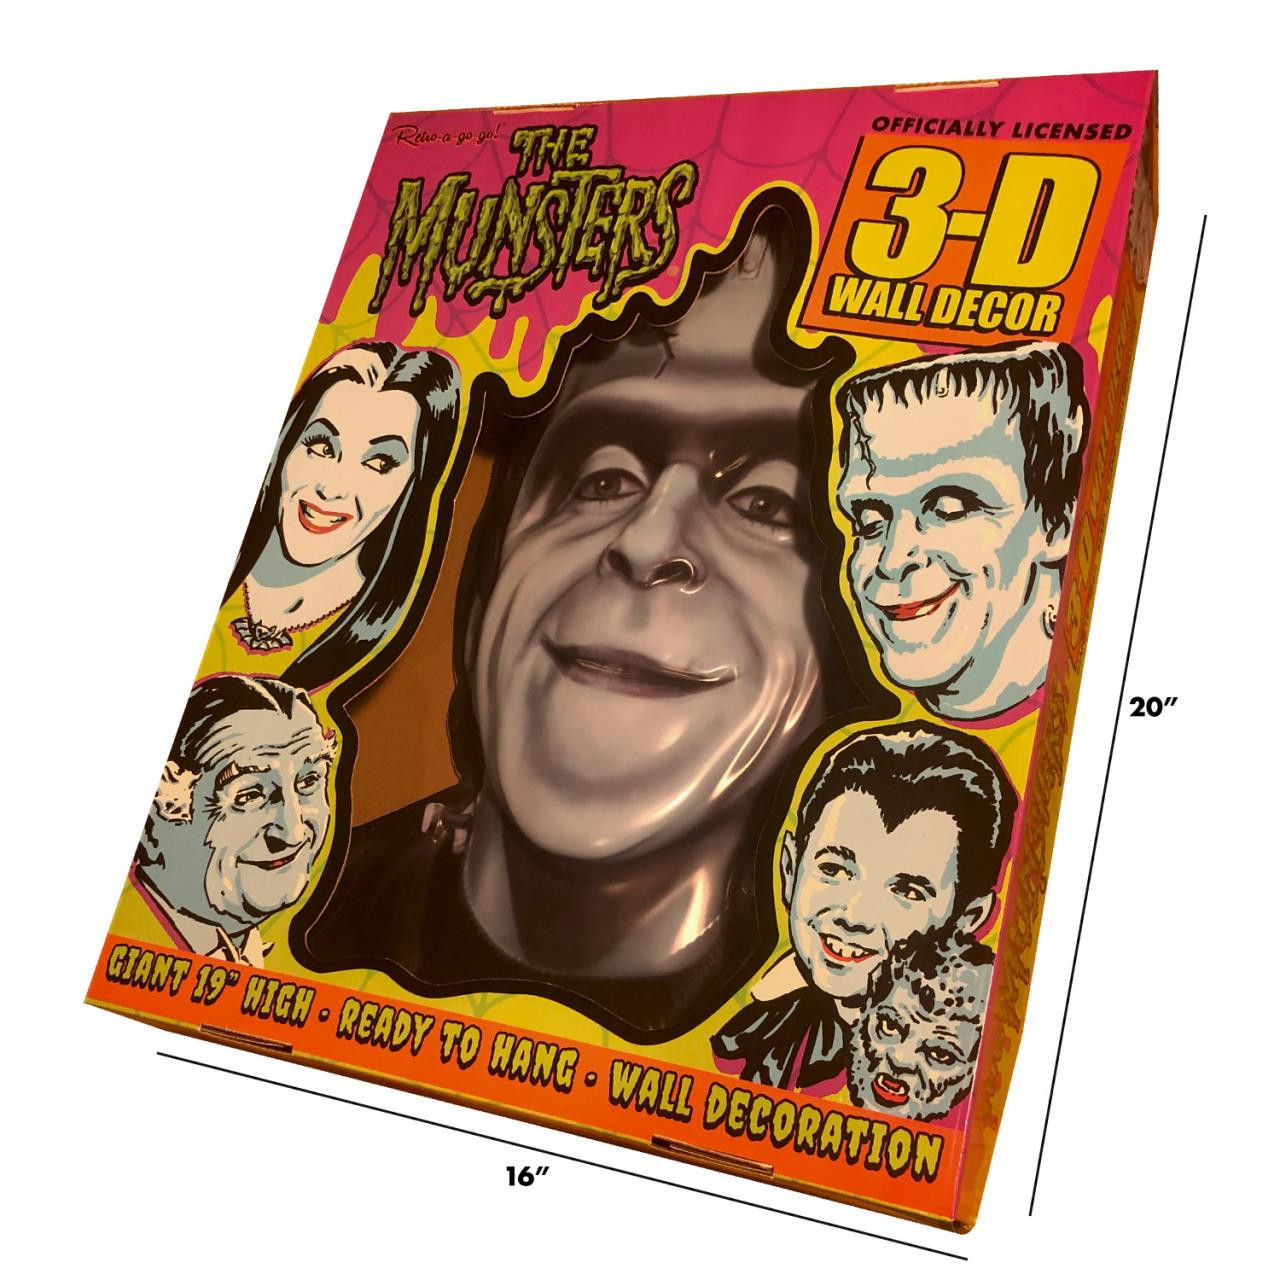 Herman Munster 3-D Wall Decor* - 0659682815701